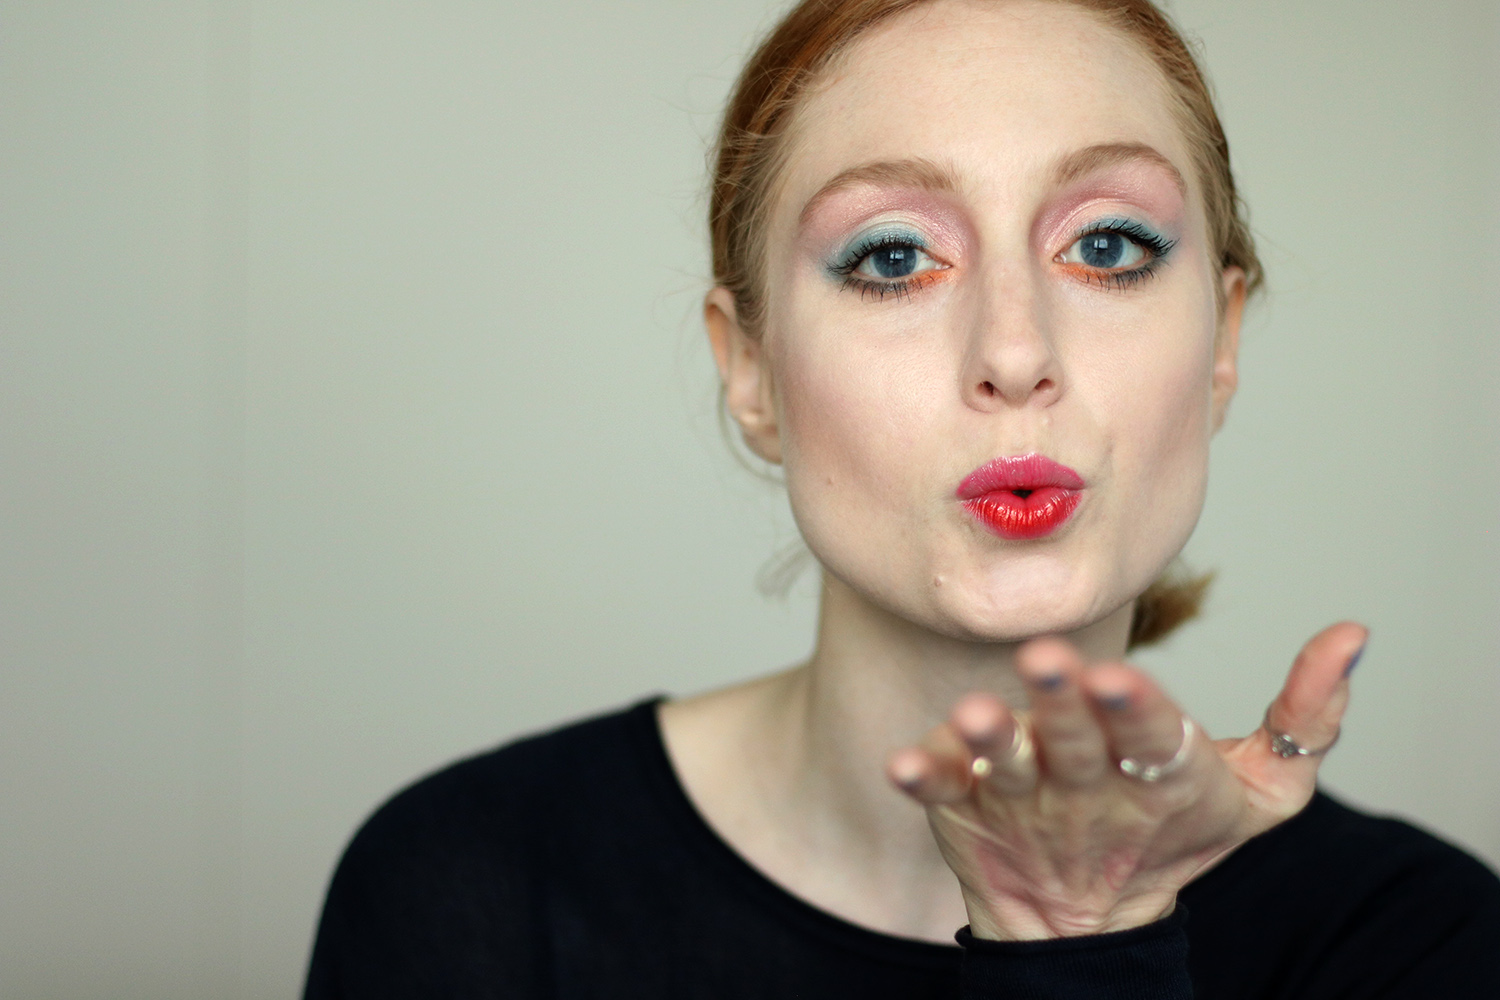 Buntes Makeup, Mutiges Makeup, Fasching, Frühling, Helle Haut, Makeup Tutorial, Monday's Makeup, Beautytipps, Beautyblog, Berlin, Influencer, Advance Your Style, ZOEVA Lidschatten Primer